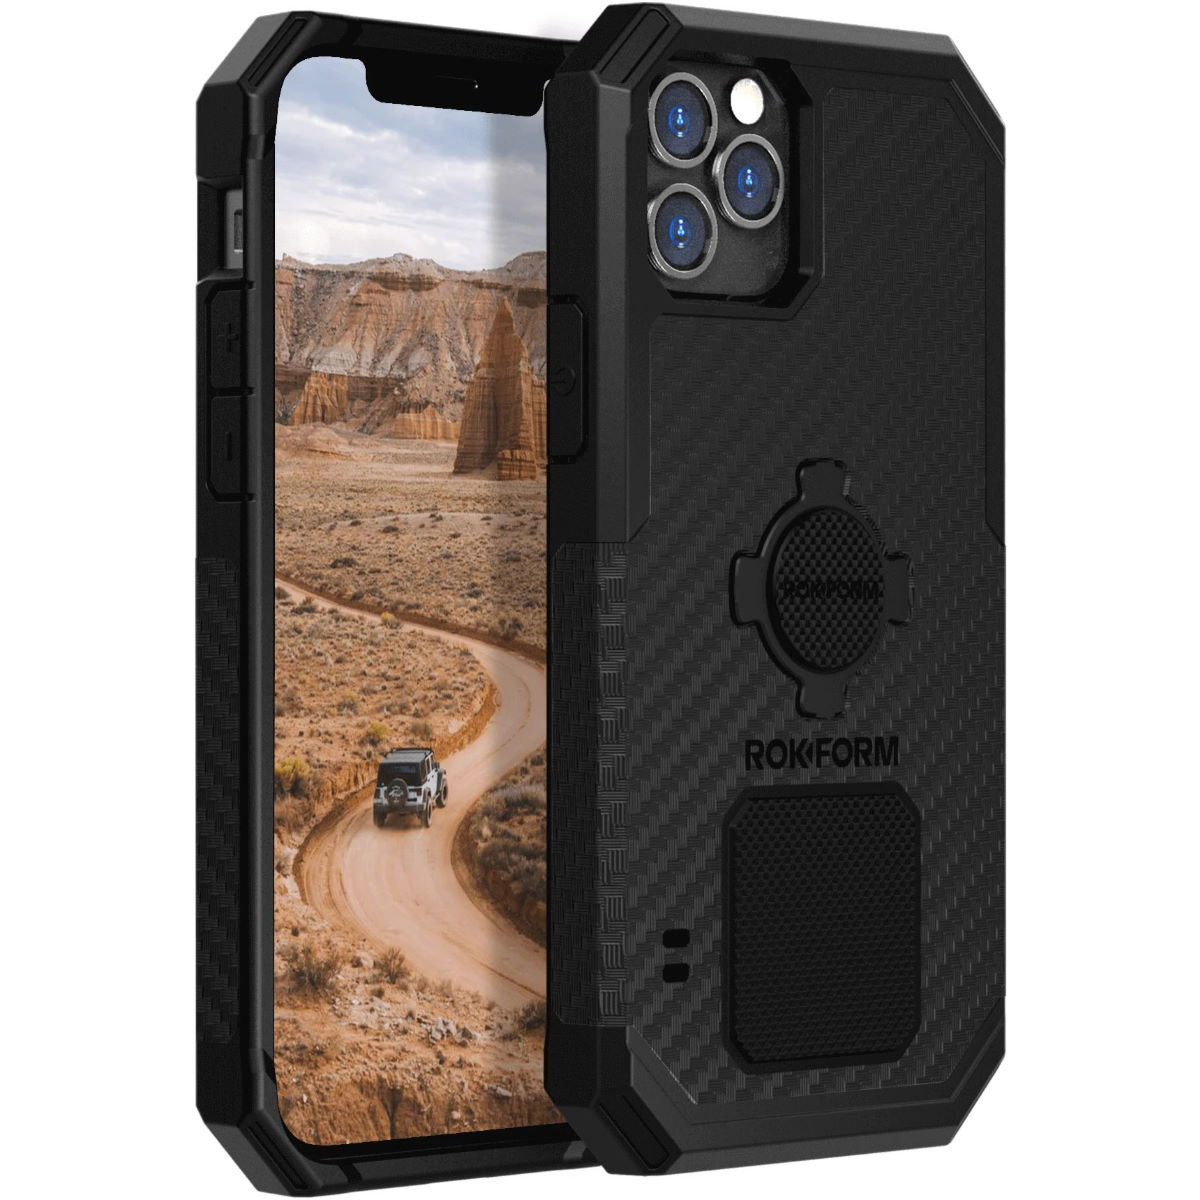 Rokform Rugged Phone Case - iPhone 12 Pro Max - One Size Black